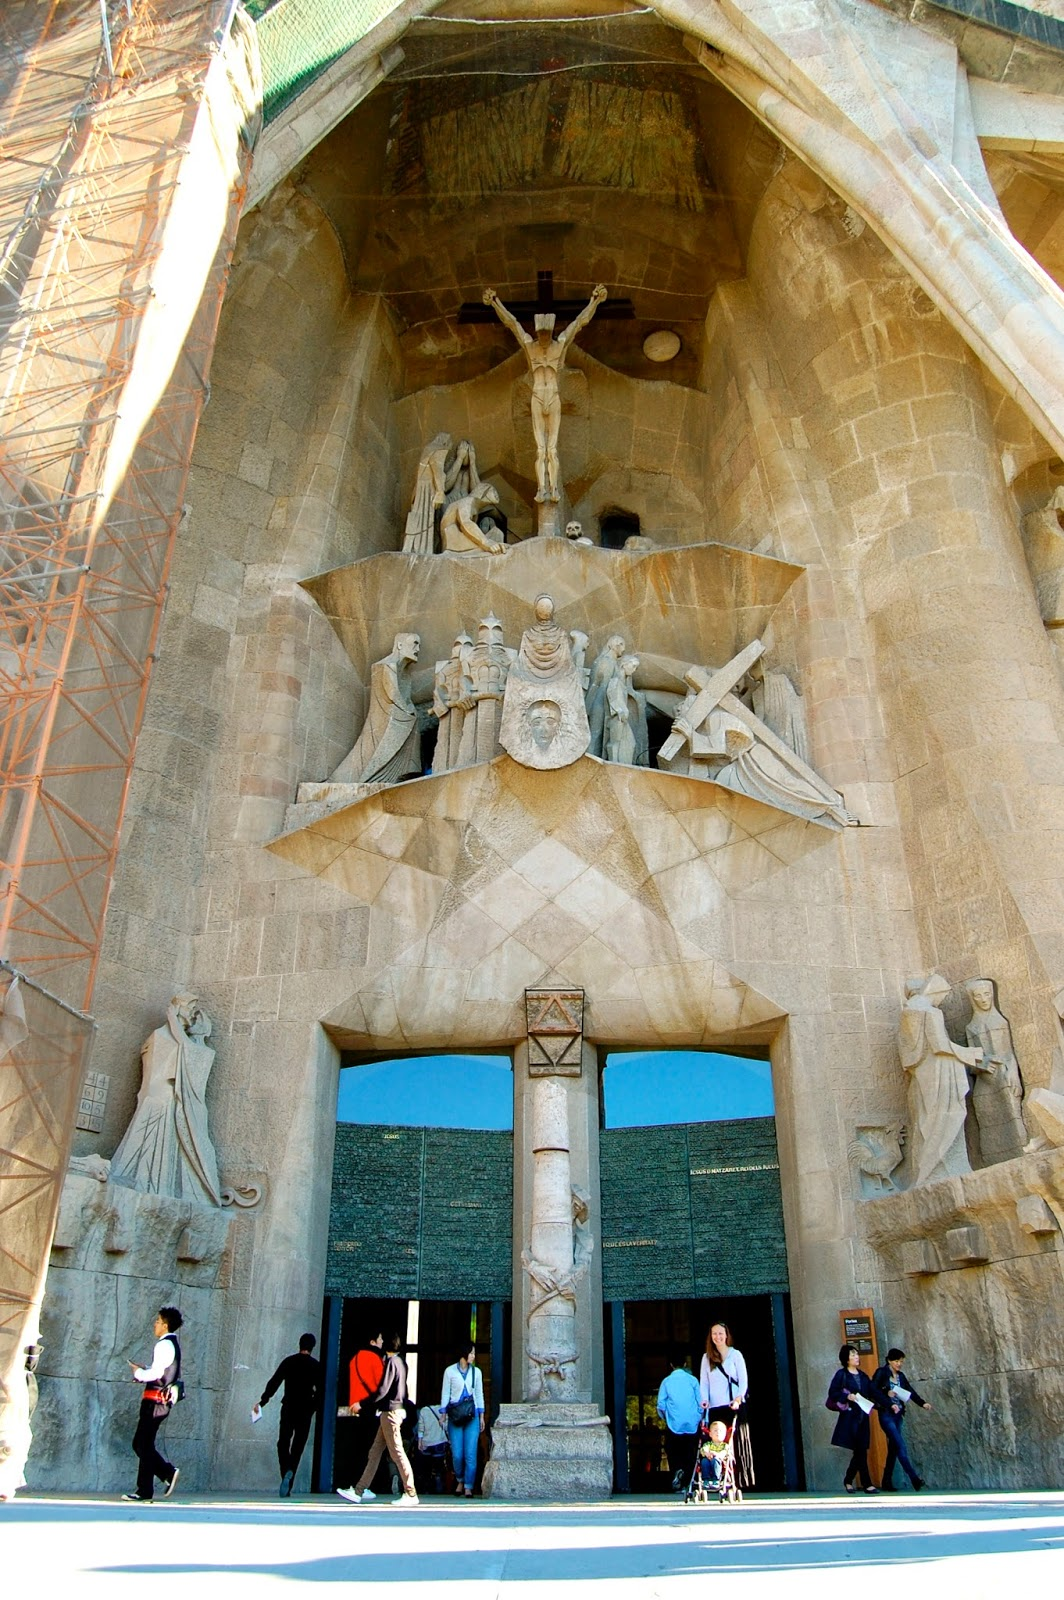 The central portal of the Passion Facade on the Sagrada Familia